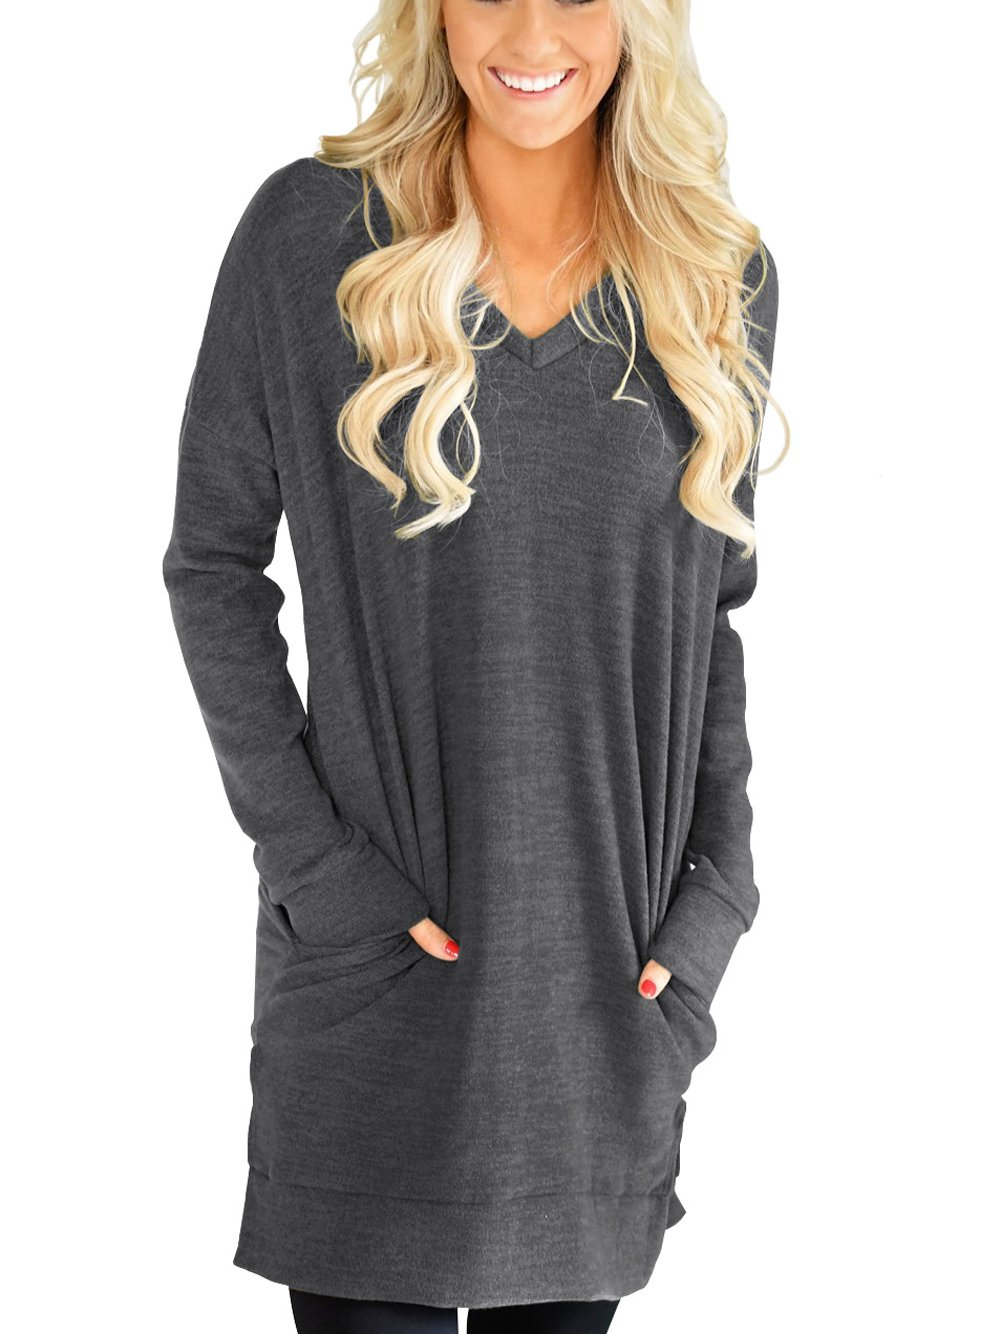 XUERRY Womens Casual V-Neck Long Sleeves Pocket Solid Color Sweatshirt Tunics Blouse Tops (Dark Grey,L)